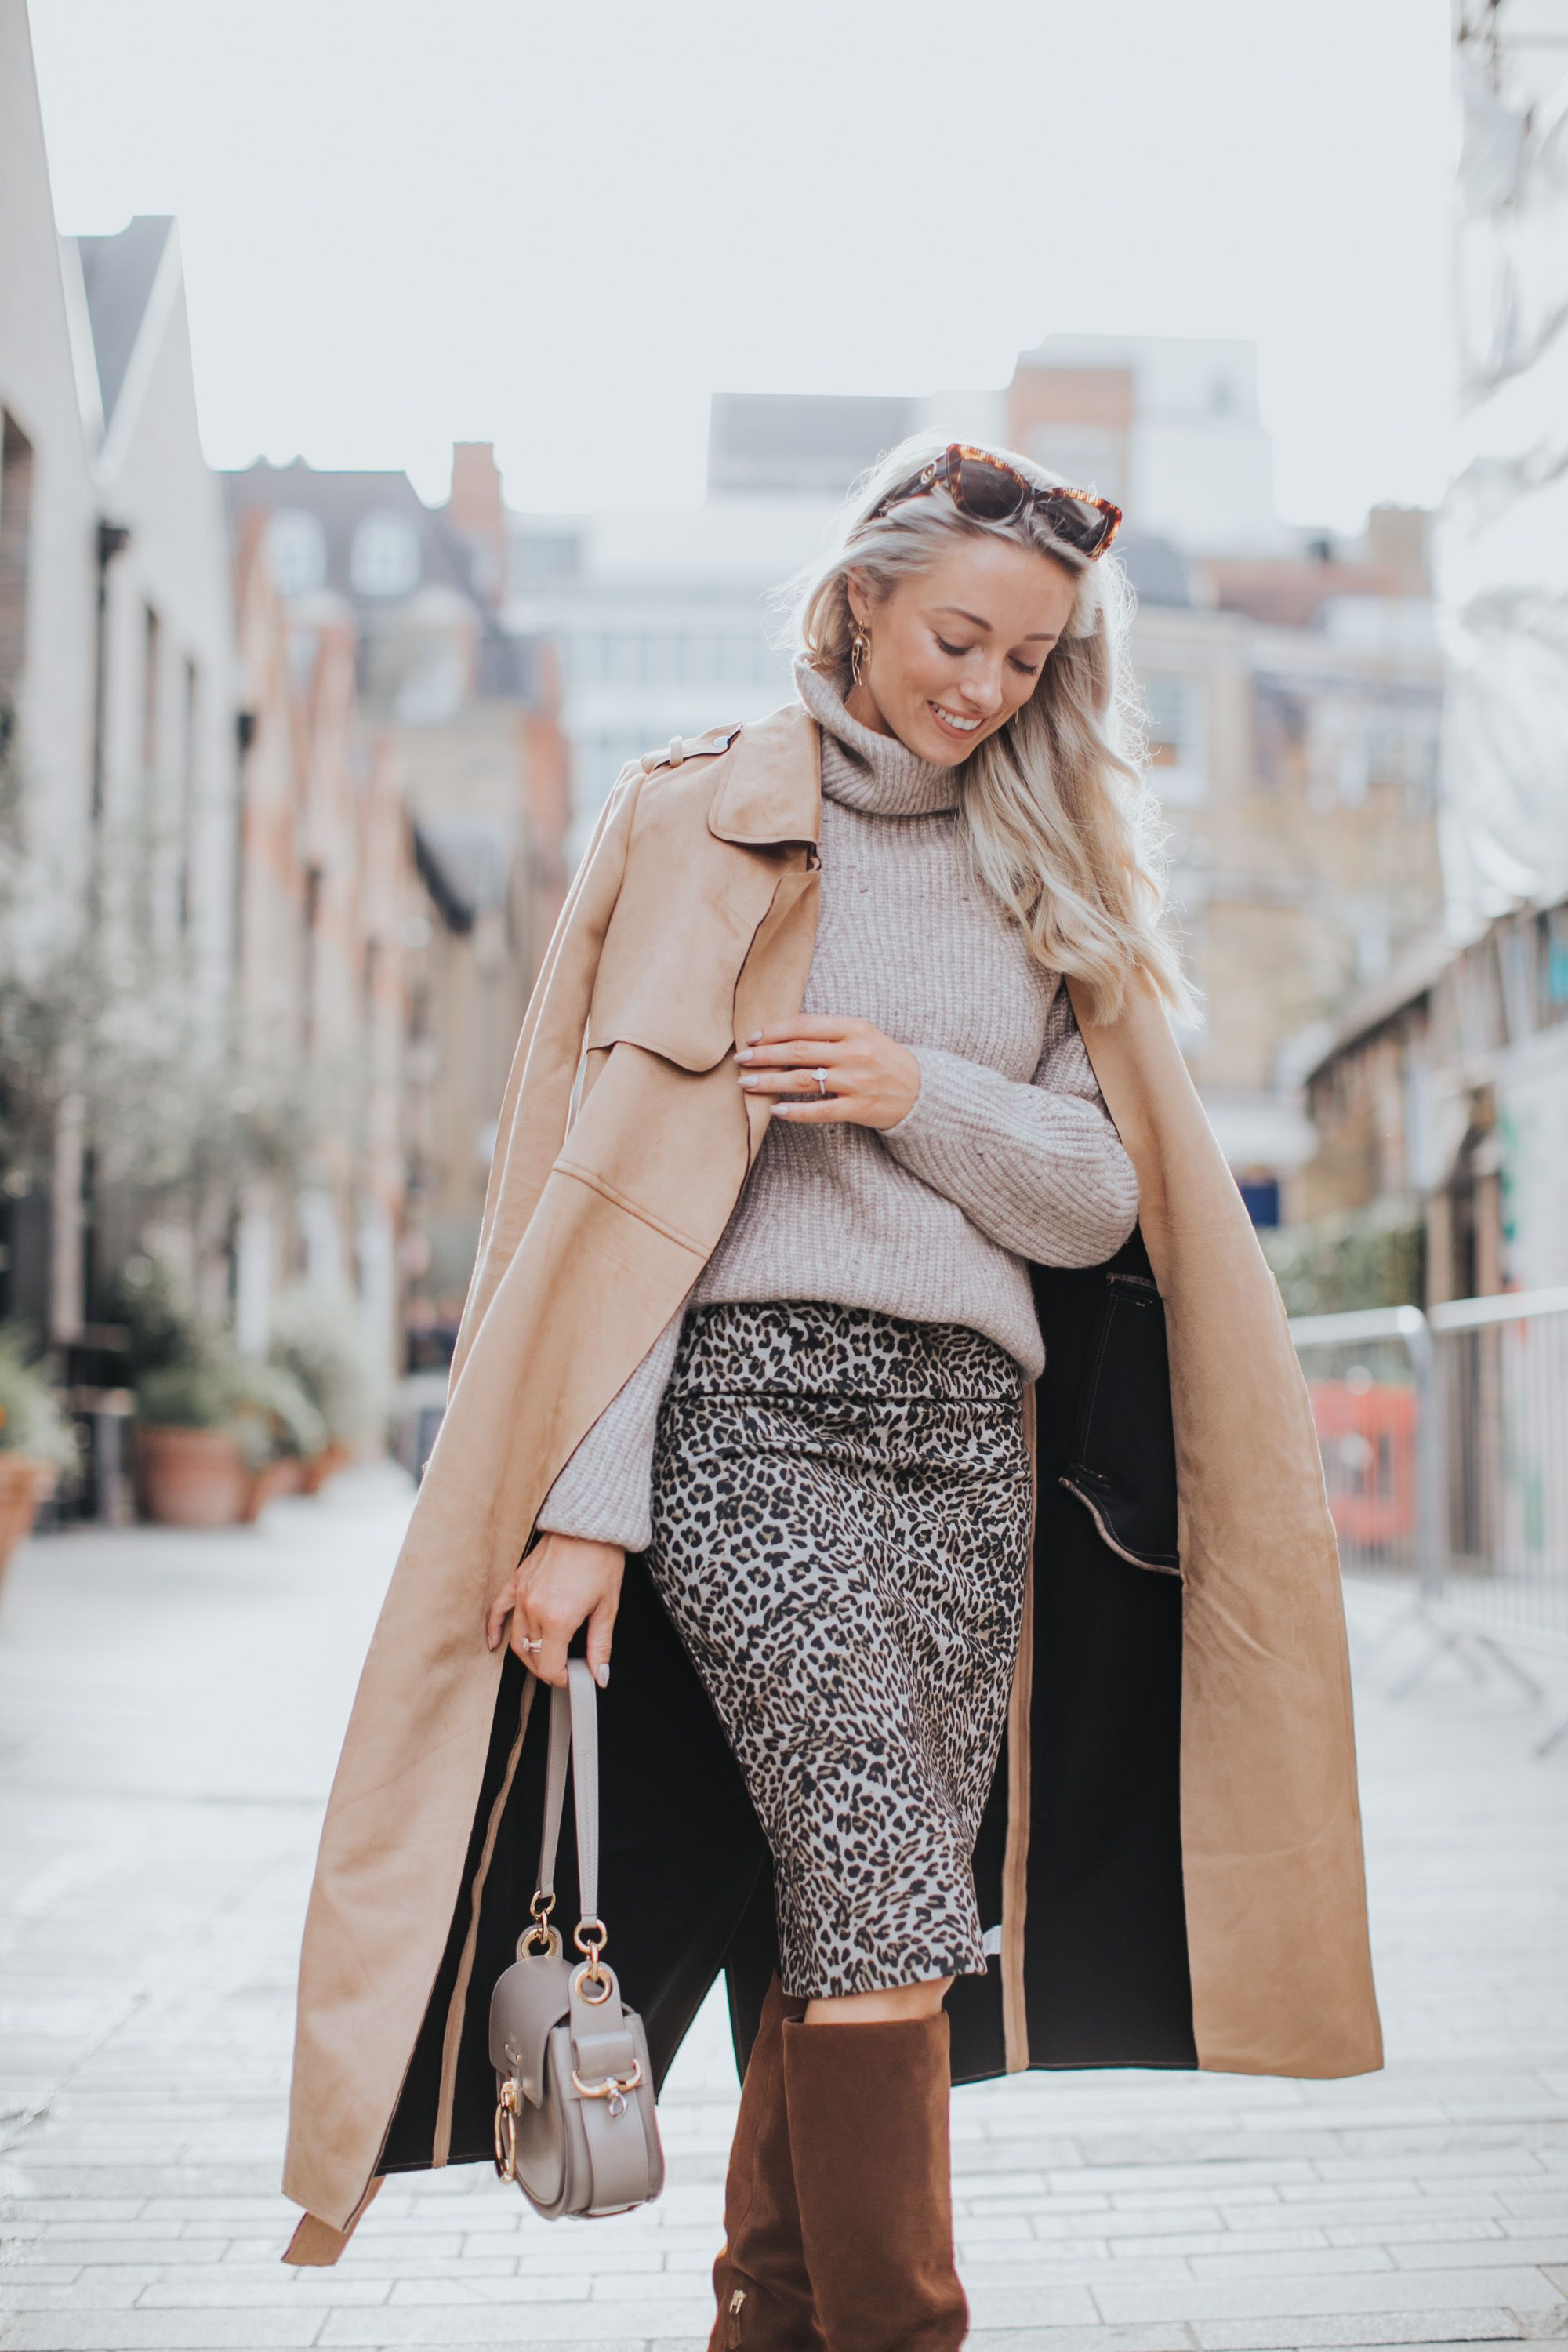 How To Look Chic When It's Cold